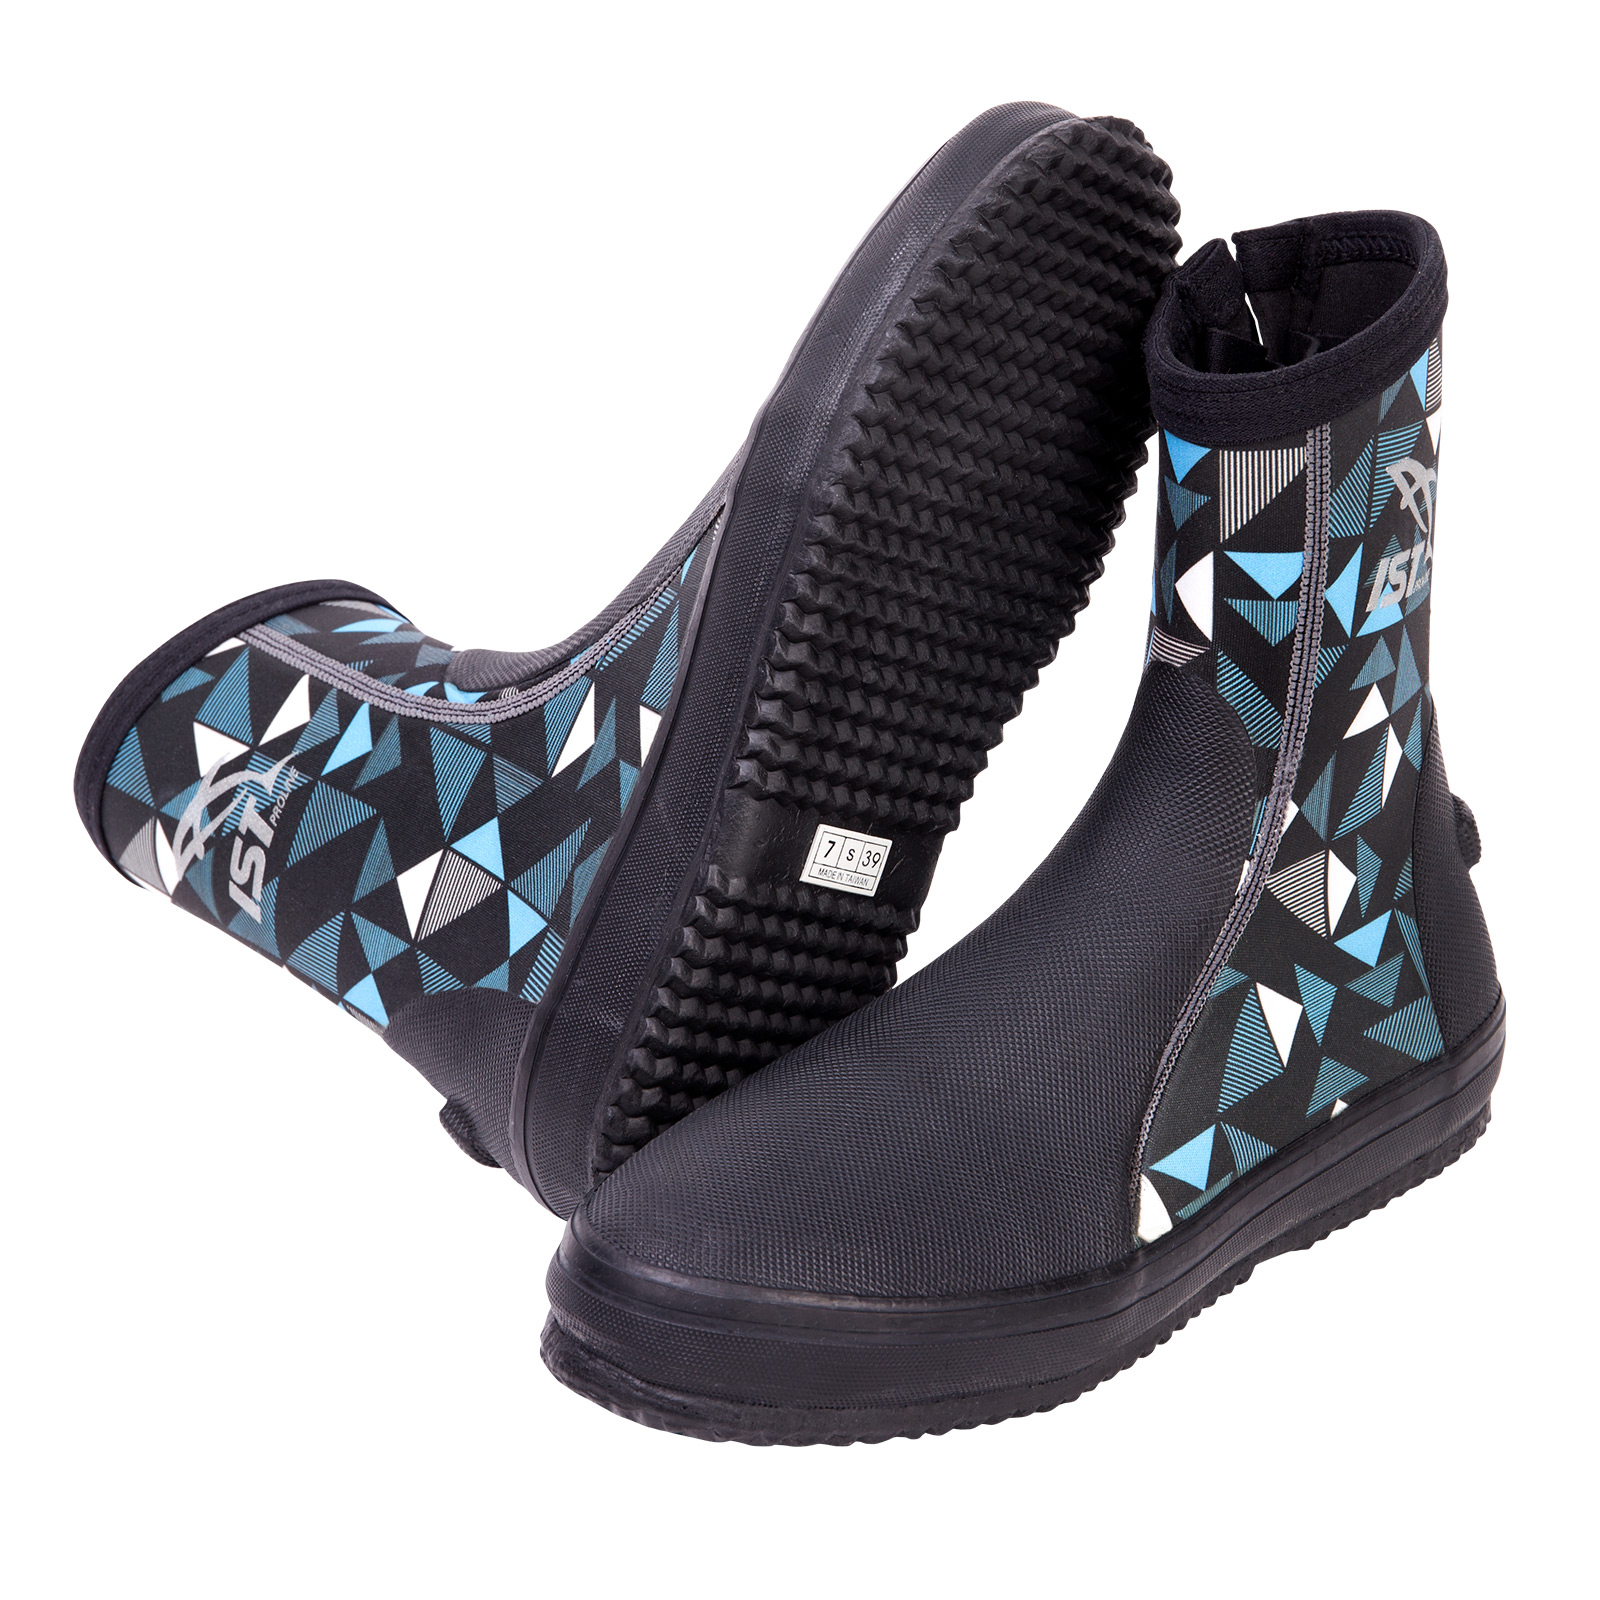 3MM Diving Boots